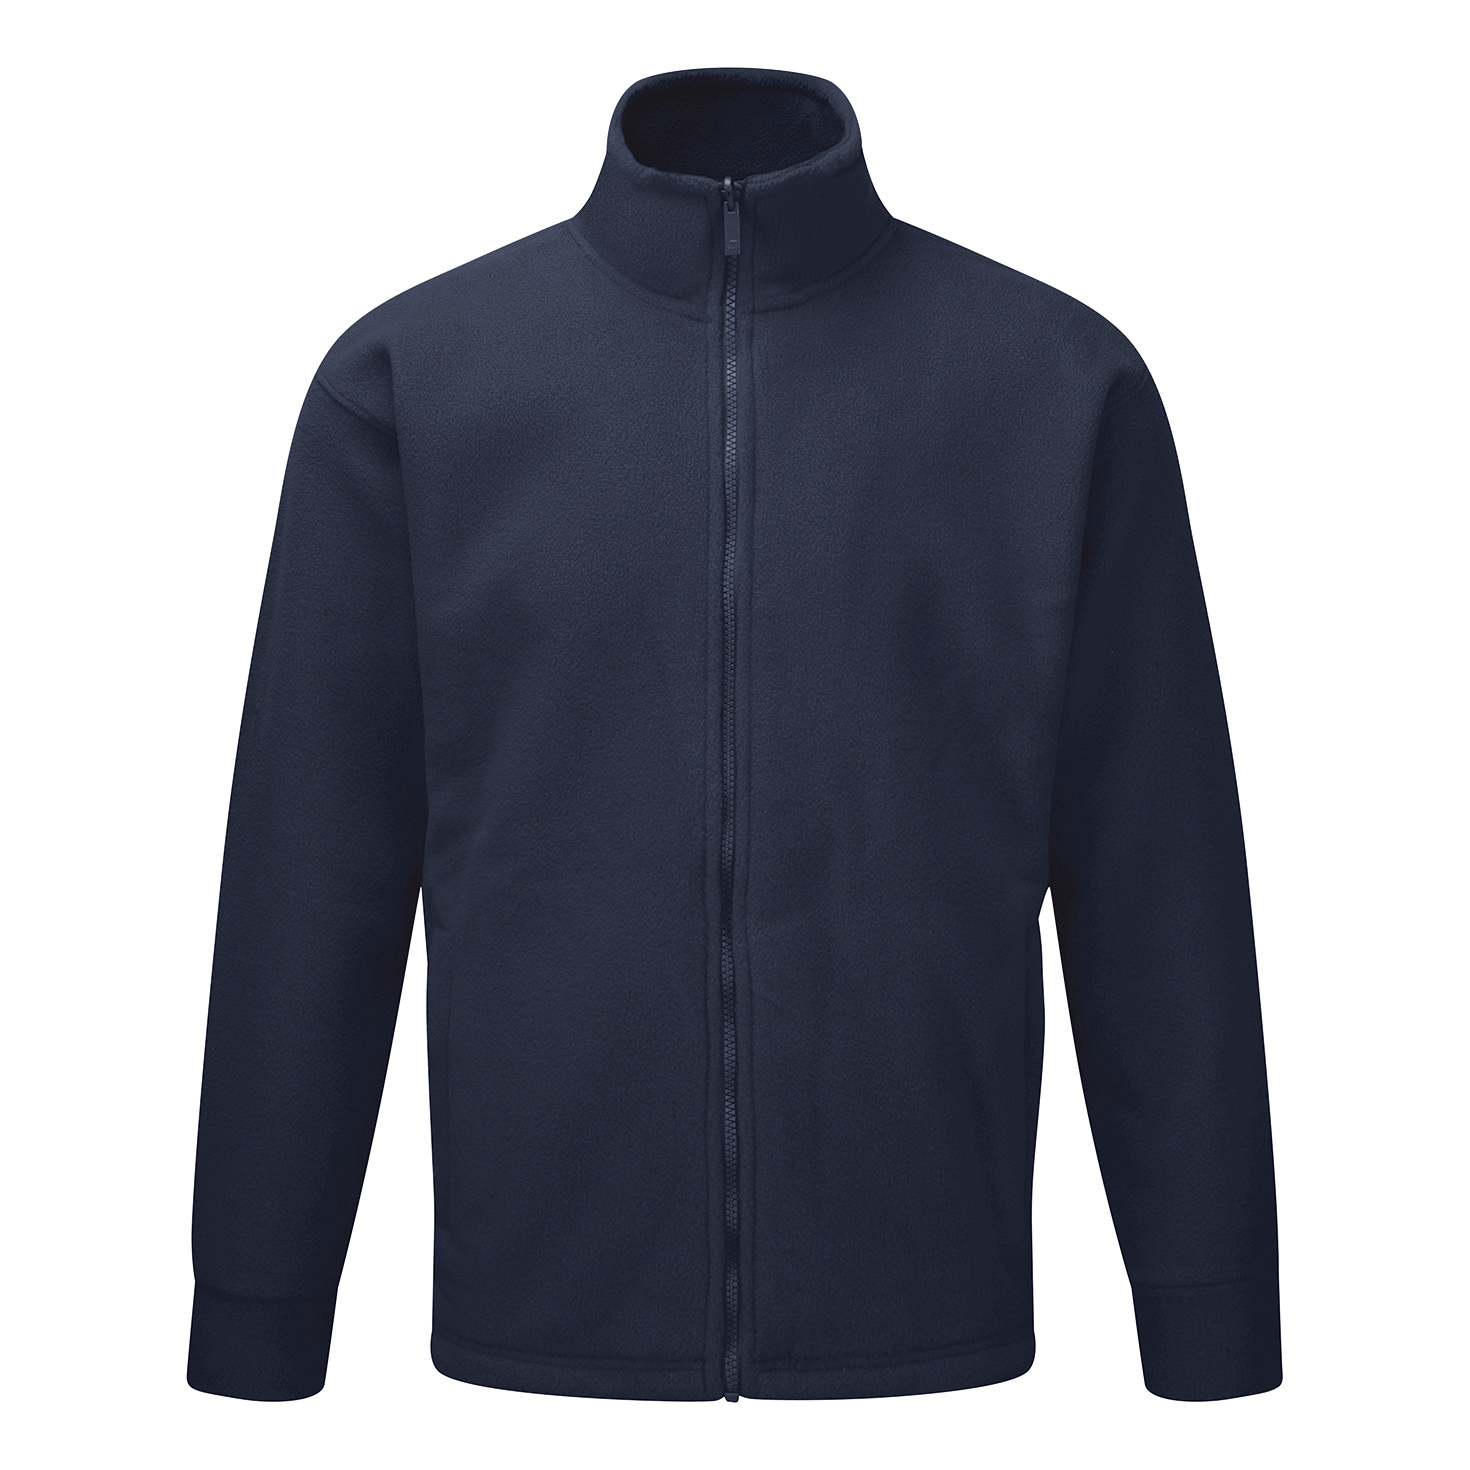 Classic Fleece Jacket Elasticated Cuffs Full Zip Front XL Navy Blue Ref FLJNXL 1-3 Days Lead Time